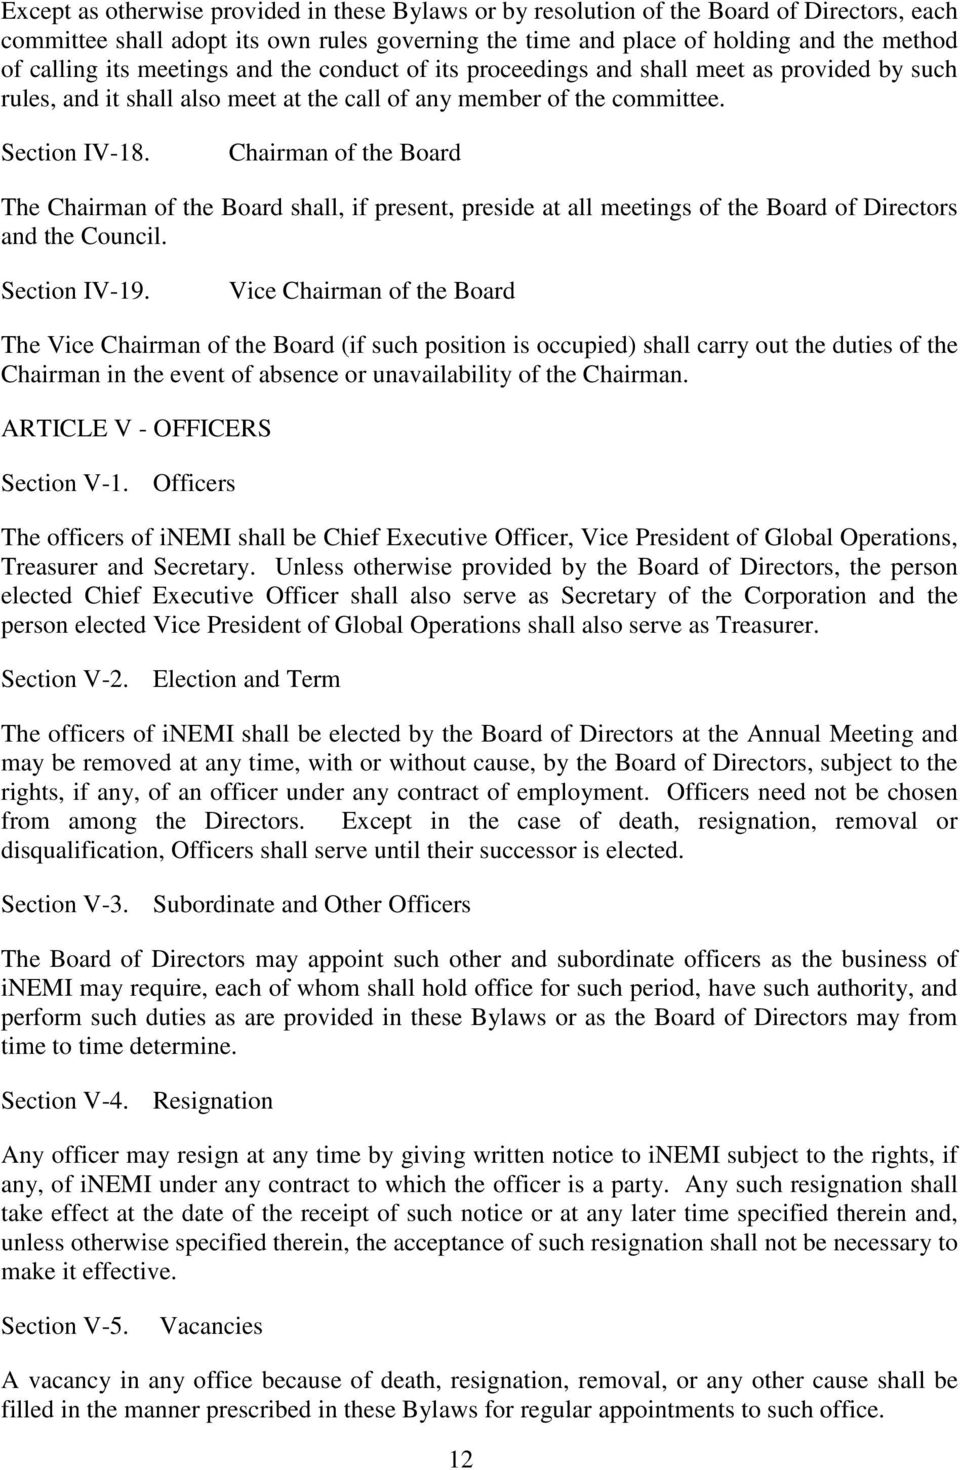 Chairman of the Board The Chairman of the Board shall, if present, preside at all meetings of the Board of Directors and the Council. Section IV-19.